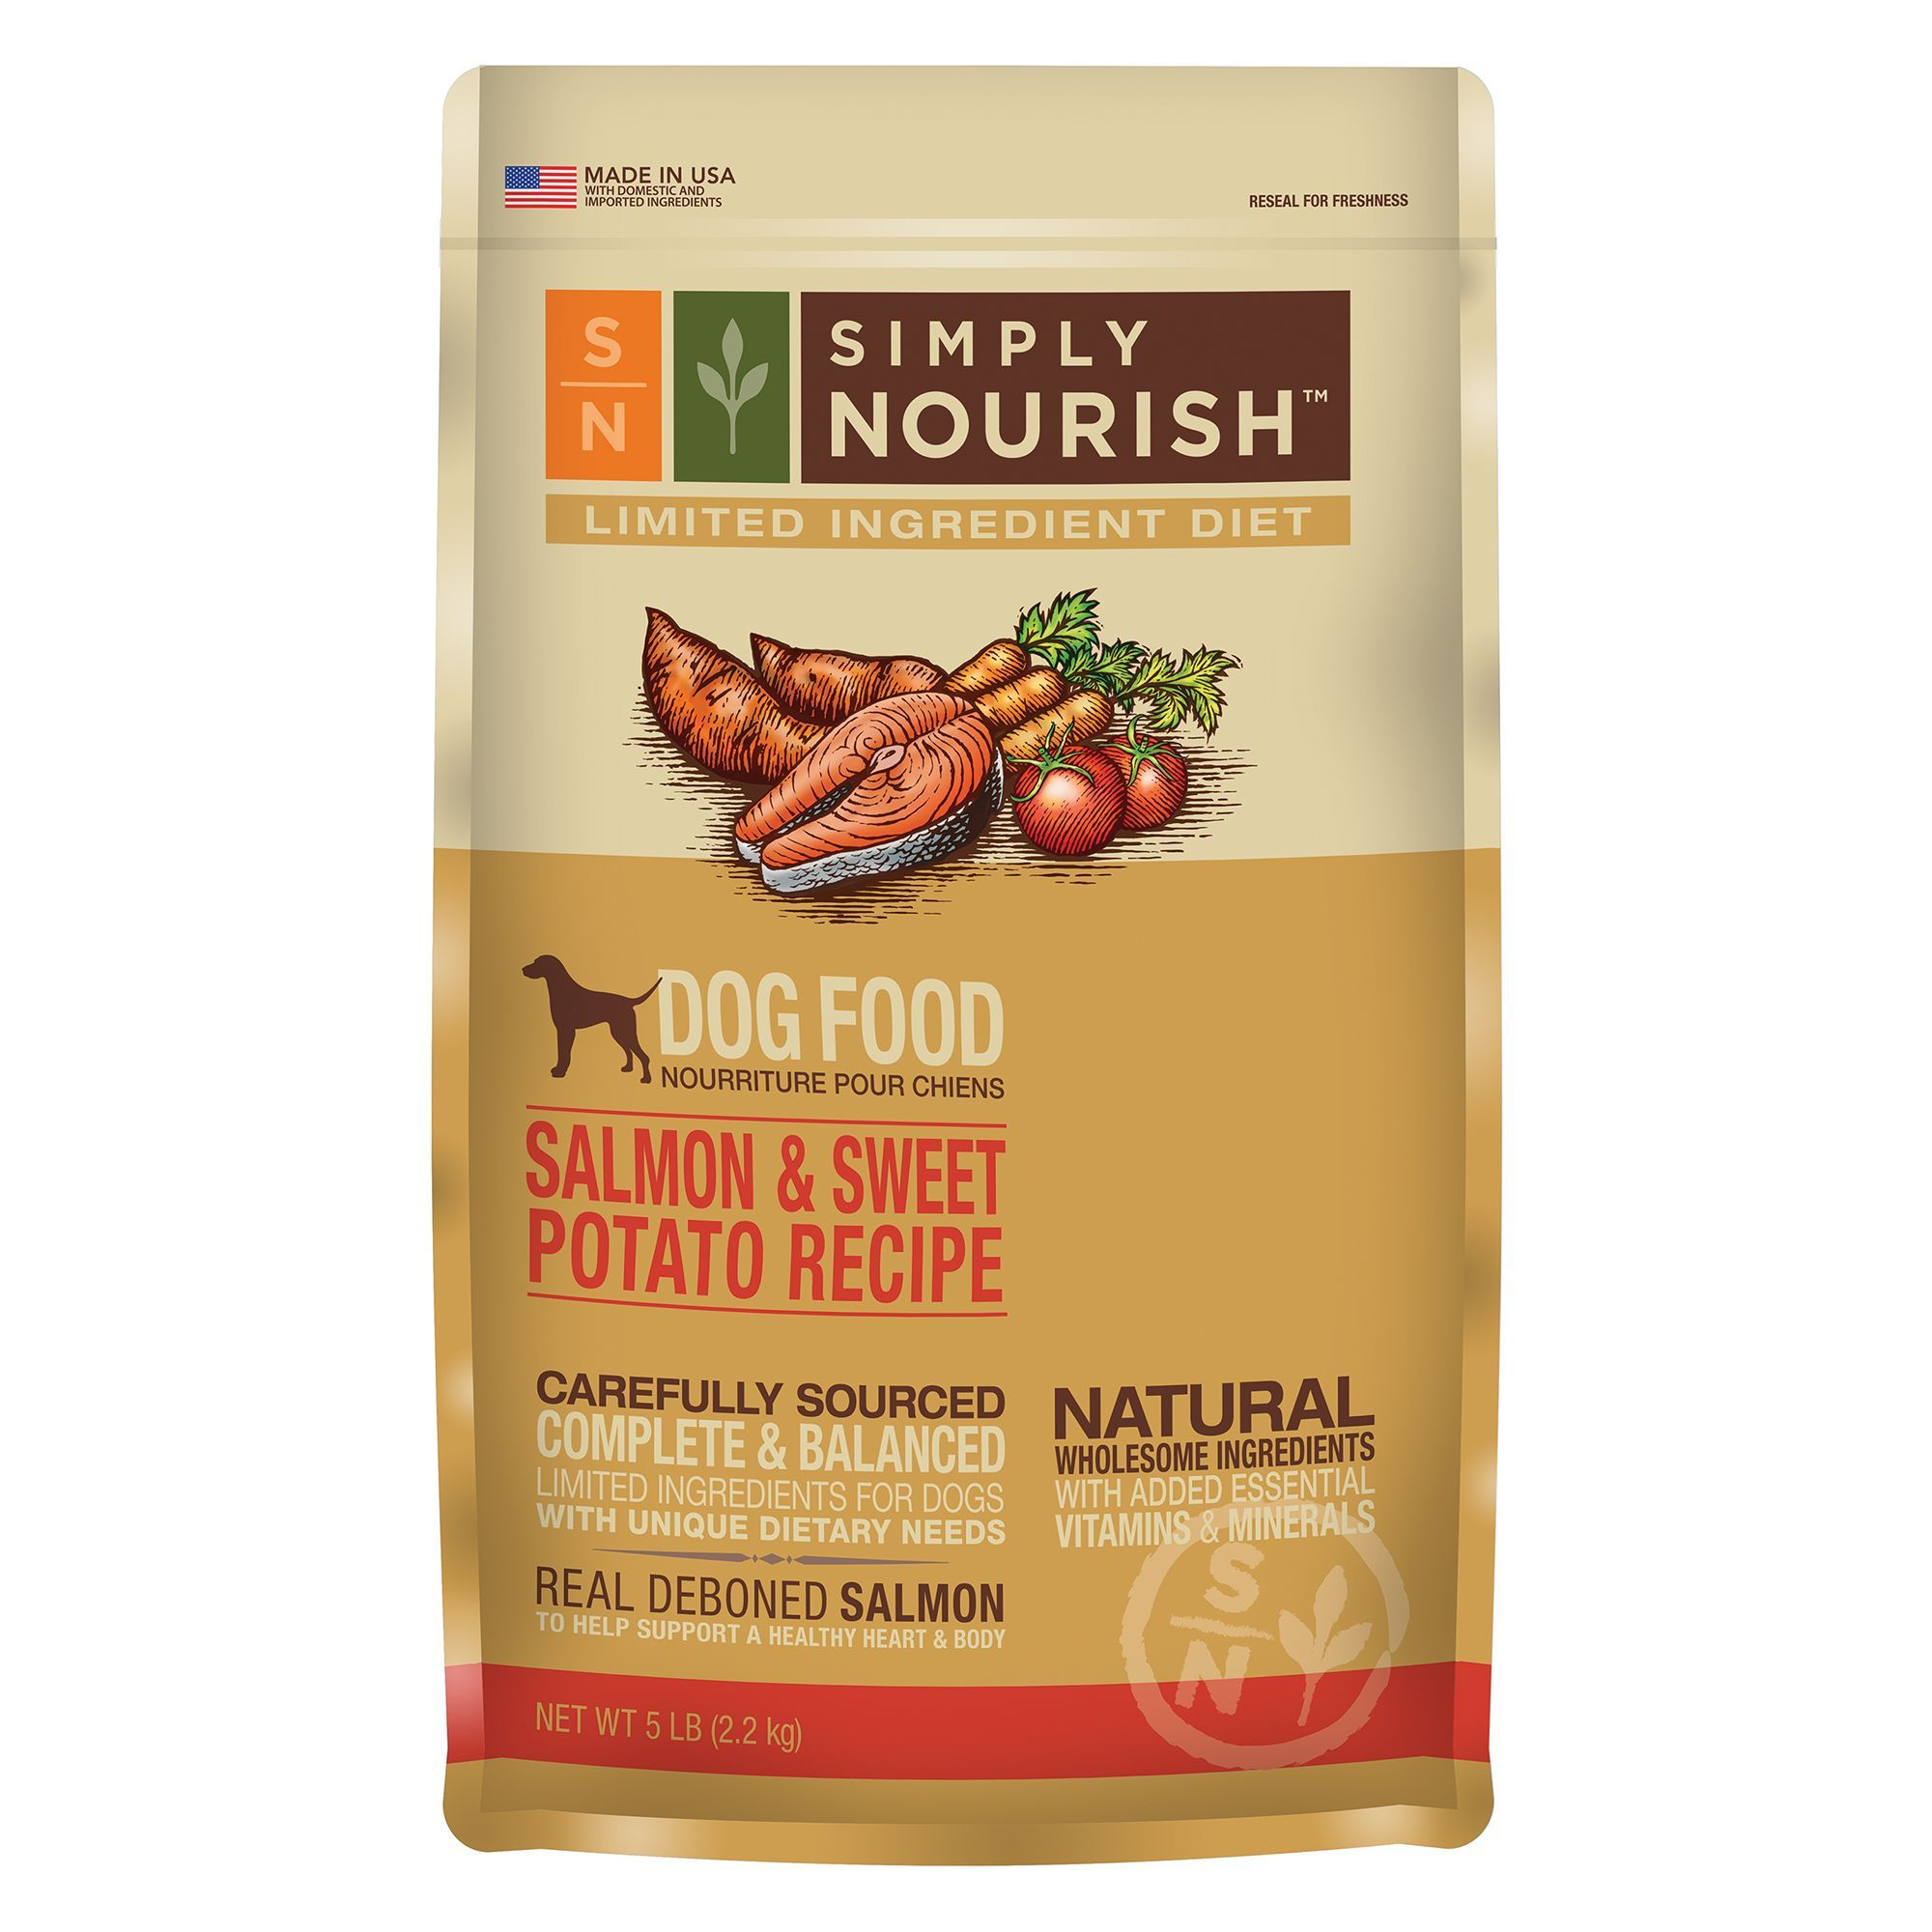 Simply Nourish Limited Ingredient Diet Dog Food Natural Salmon